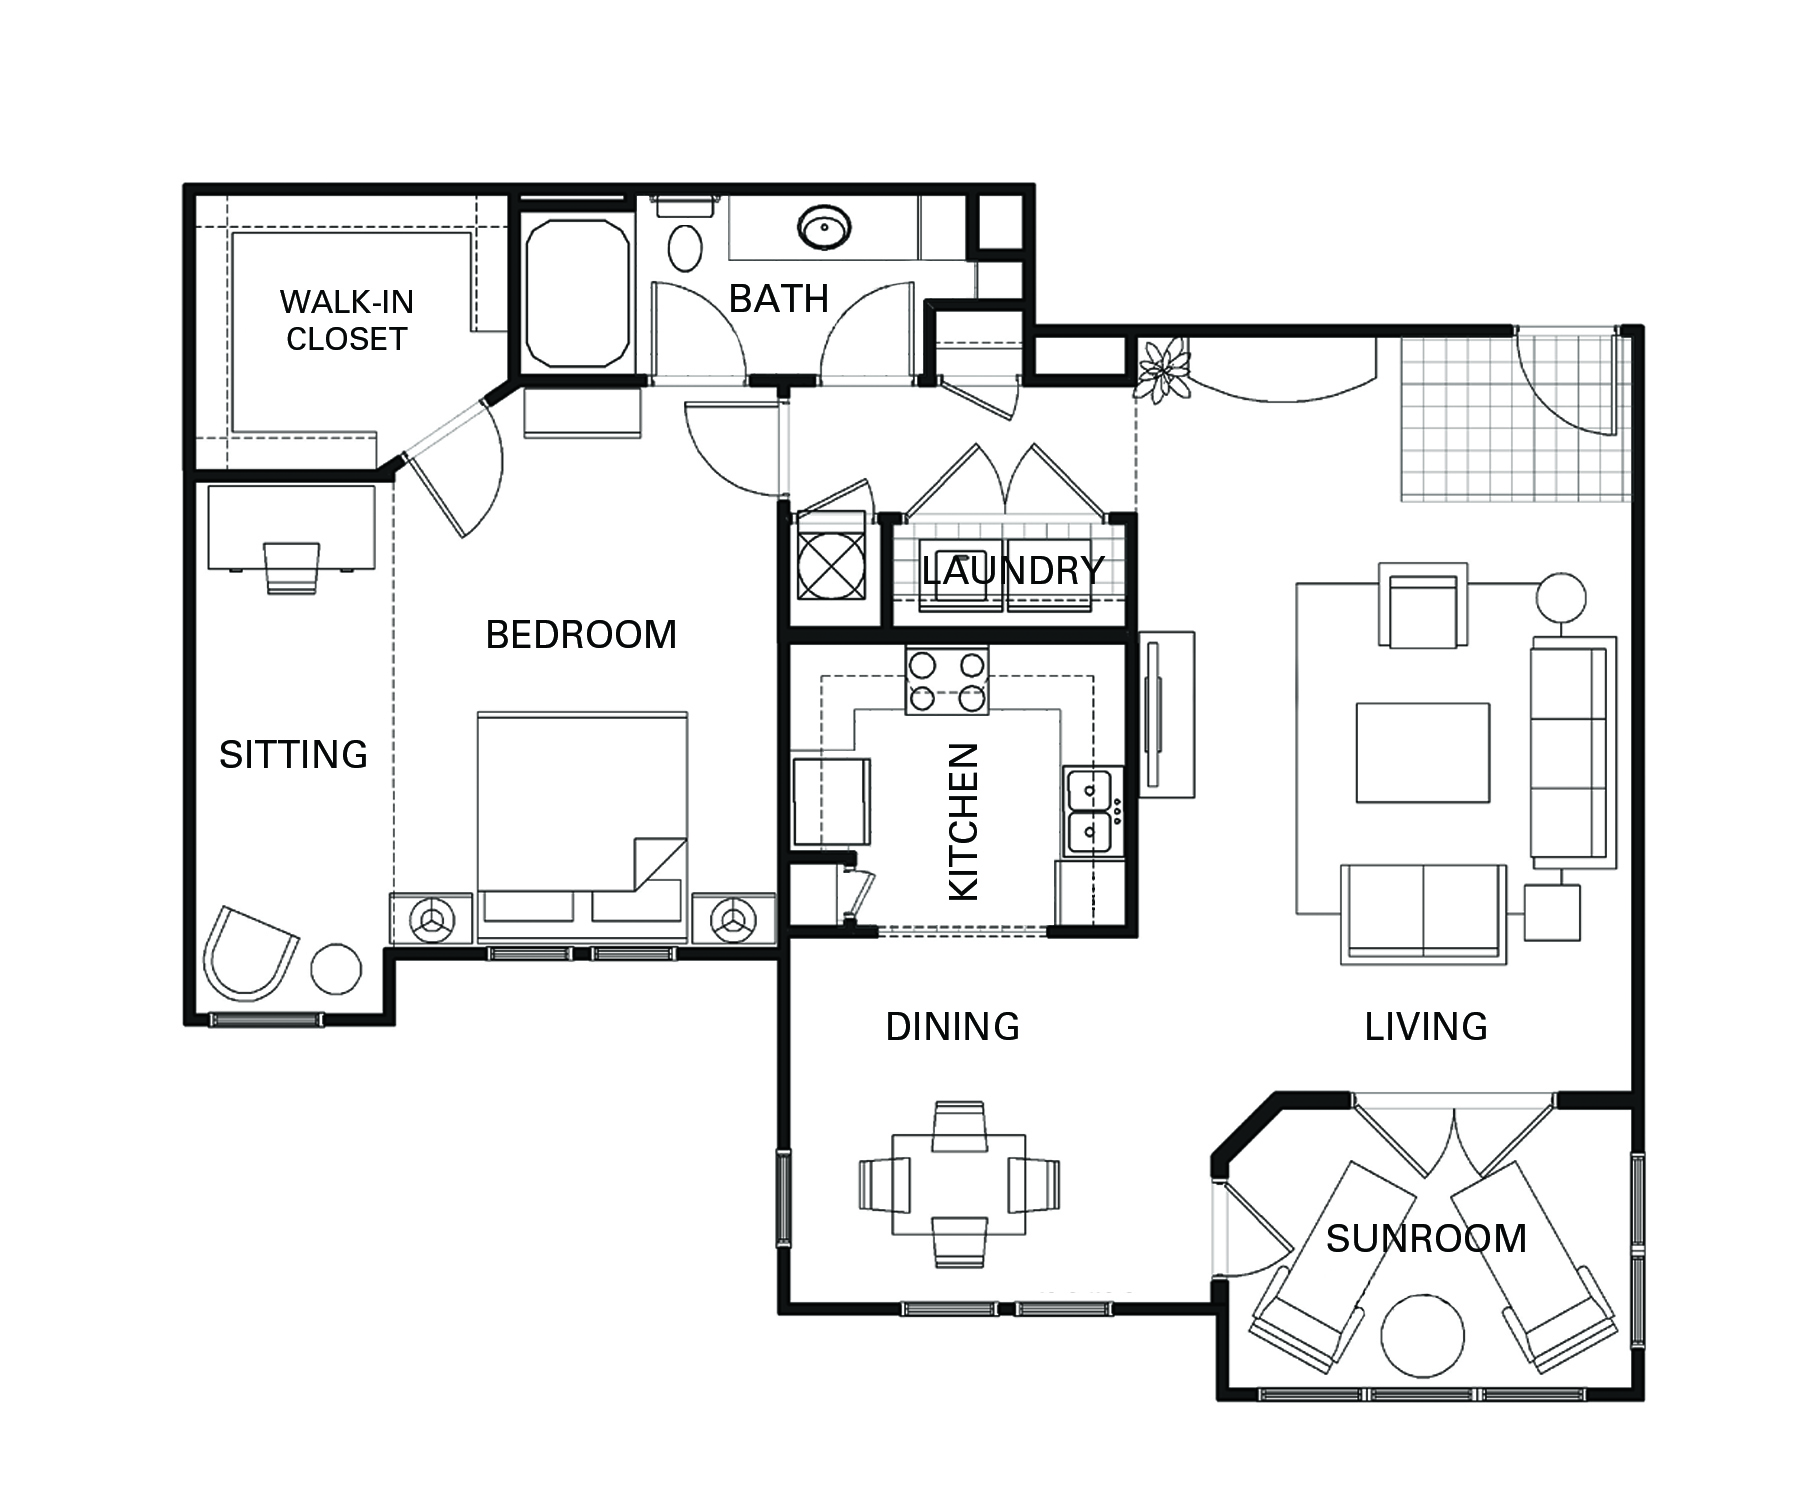 One bedroom one bathroom A6 floorplan at The Apartments at Blakeney in Charlotte, NC